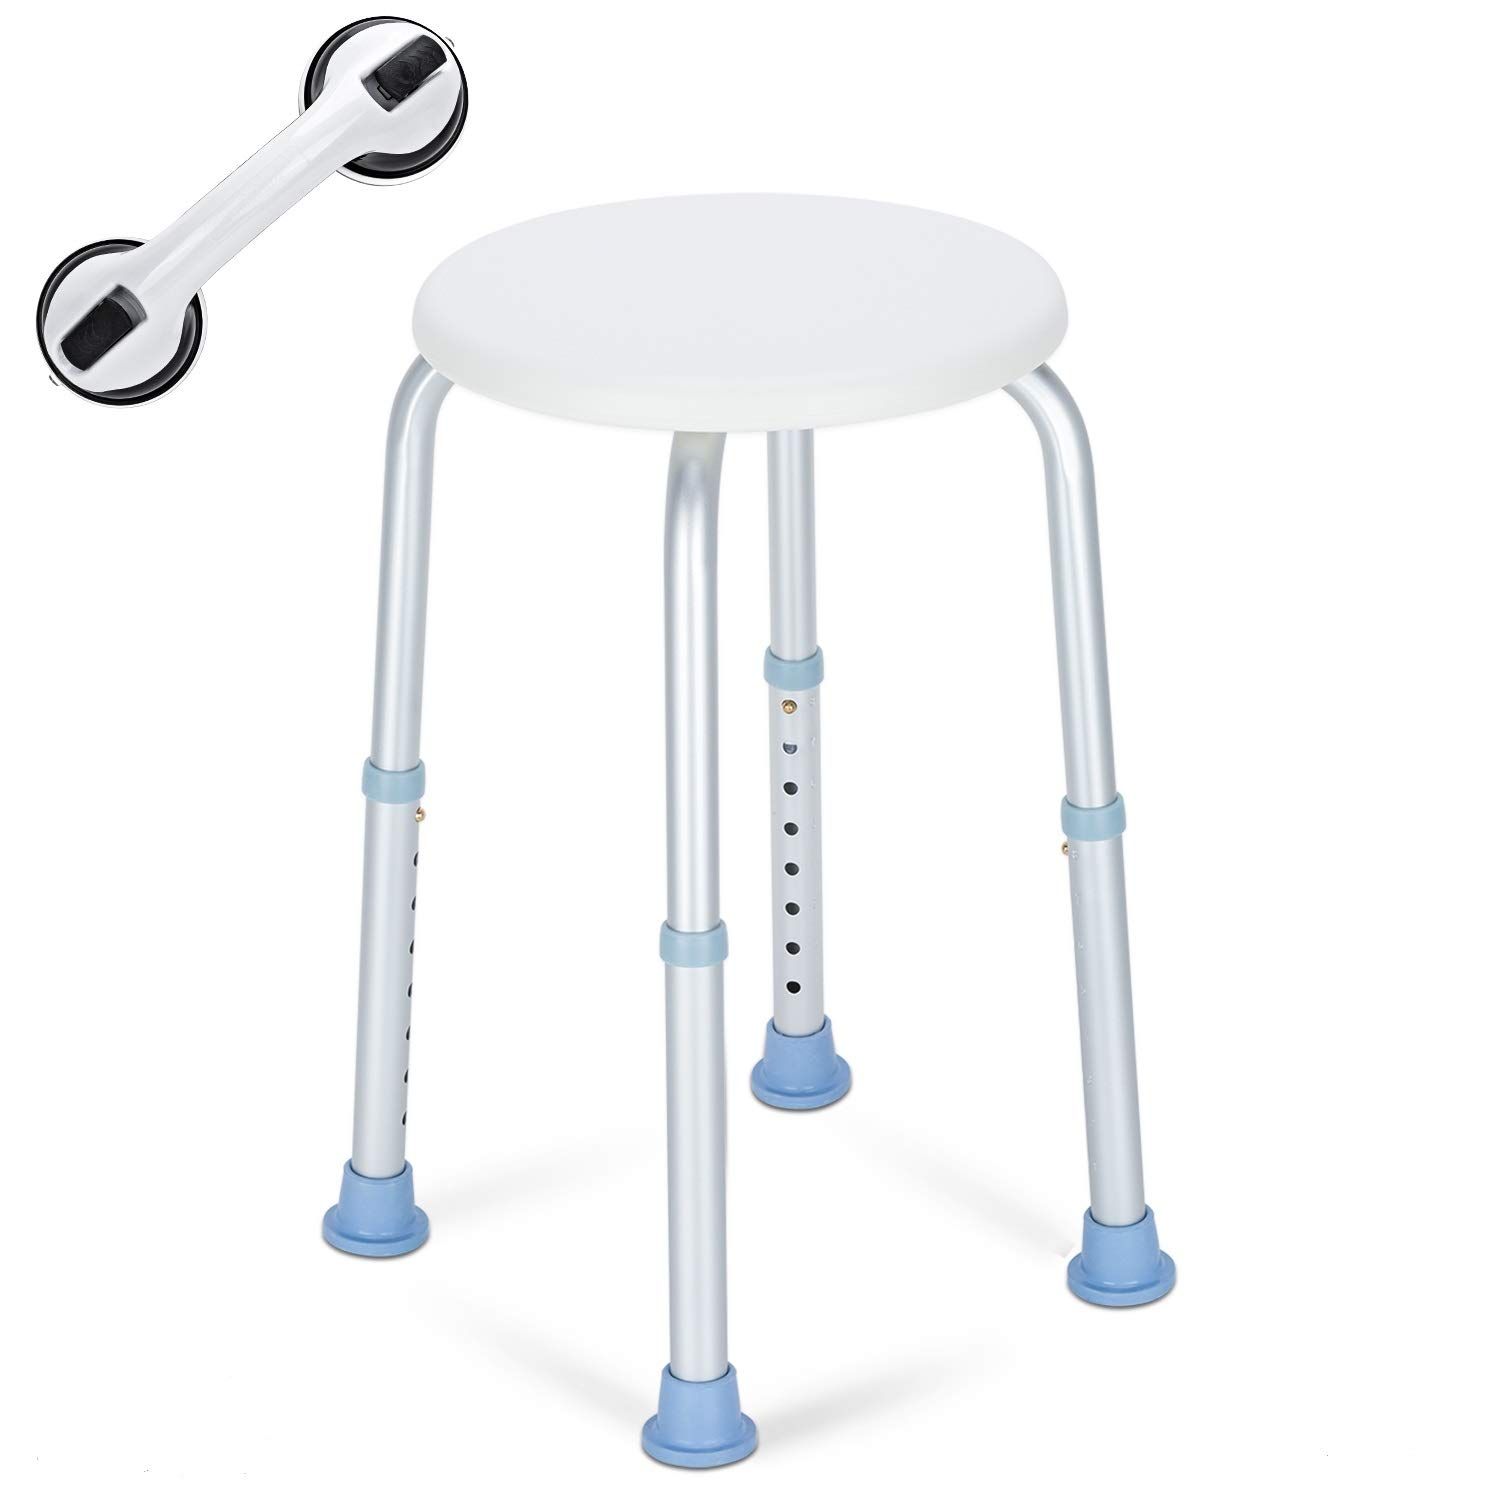 OasisSpace Shower Stool, Heavy Duty Adjustable Bath Chair with Free Grab Bar, Medical Tool Free Anti-Slip Bathtub Seat Bench Lightweight and Durable for Elderly, Senior, Handicap, Disabled Round by OasisSpace (Image #1)